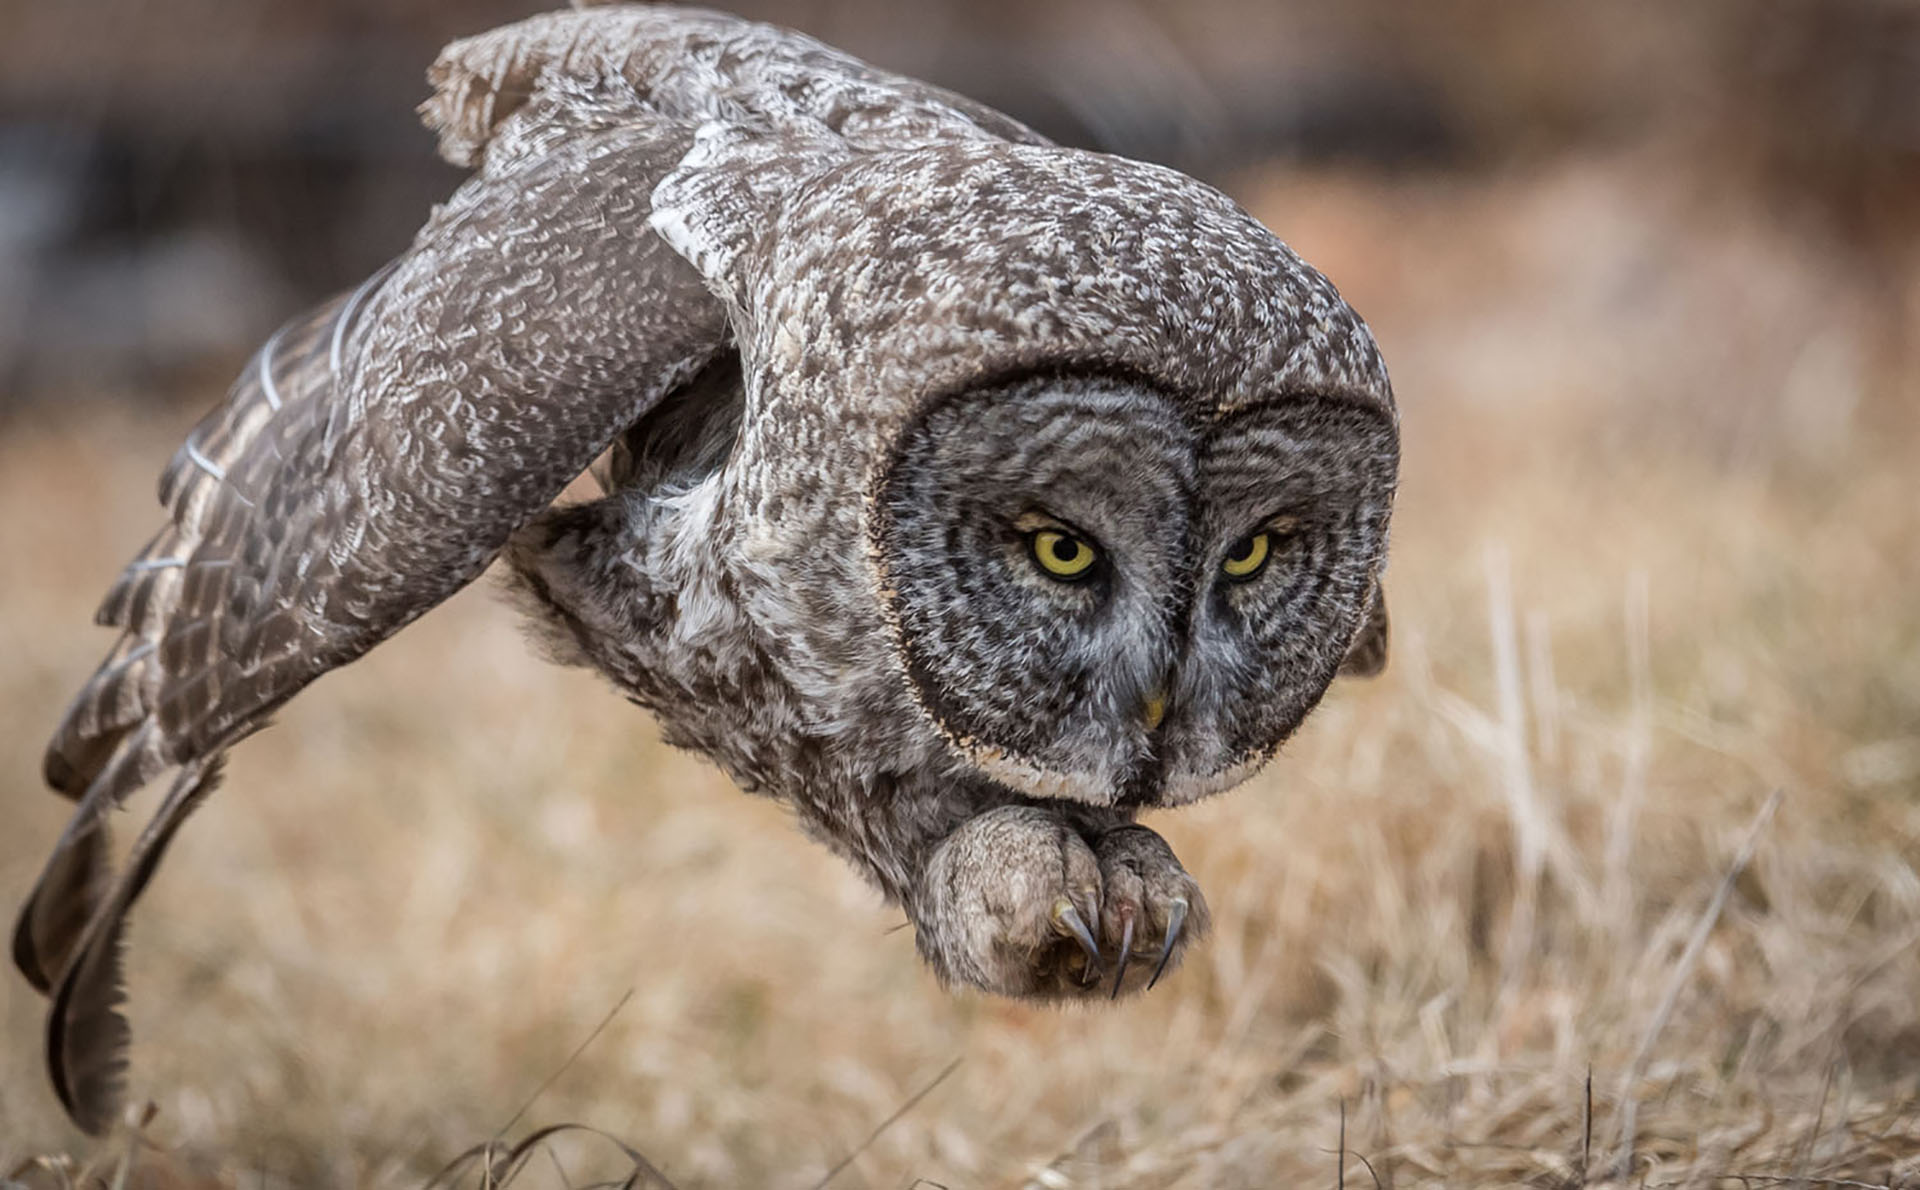 A great gray owl hunting rodents in a field in New Hampshire, US. This bird was a rare visitor to this area and was worth the 7 1/2 hour drive to see it. The owl was not baited or called and this photo is during a natural hunt. Baiting has become a hot topic recently and it is very unfortunate that many people do it for the sake of a photo. With these owls in particular if you are patient enough you will see them hunt. They are not shy nor very intimidated by people.